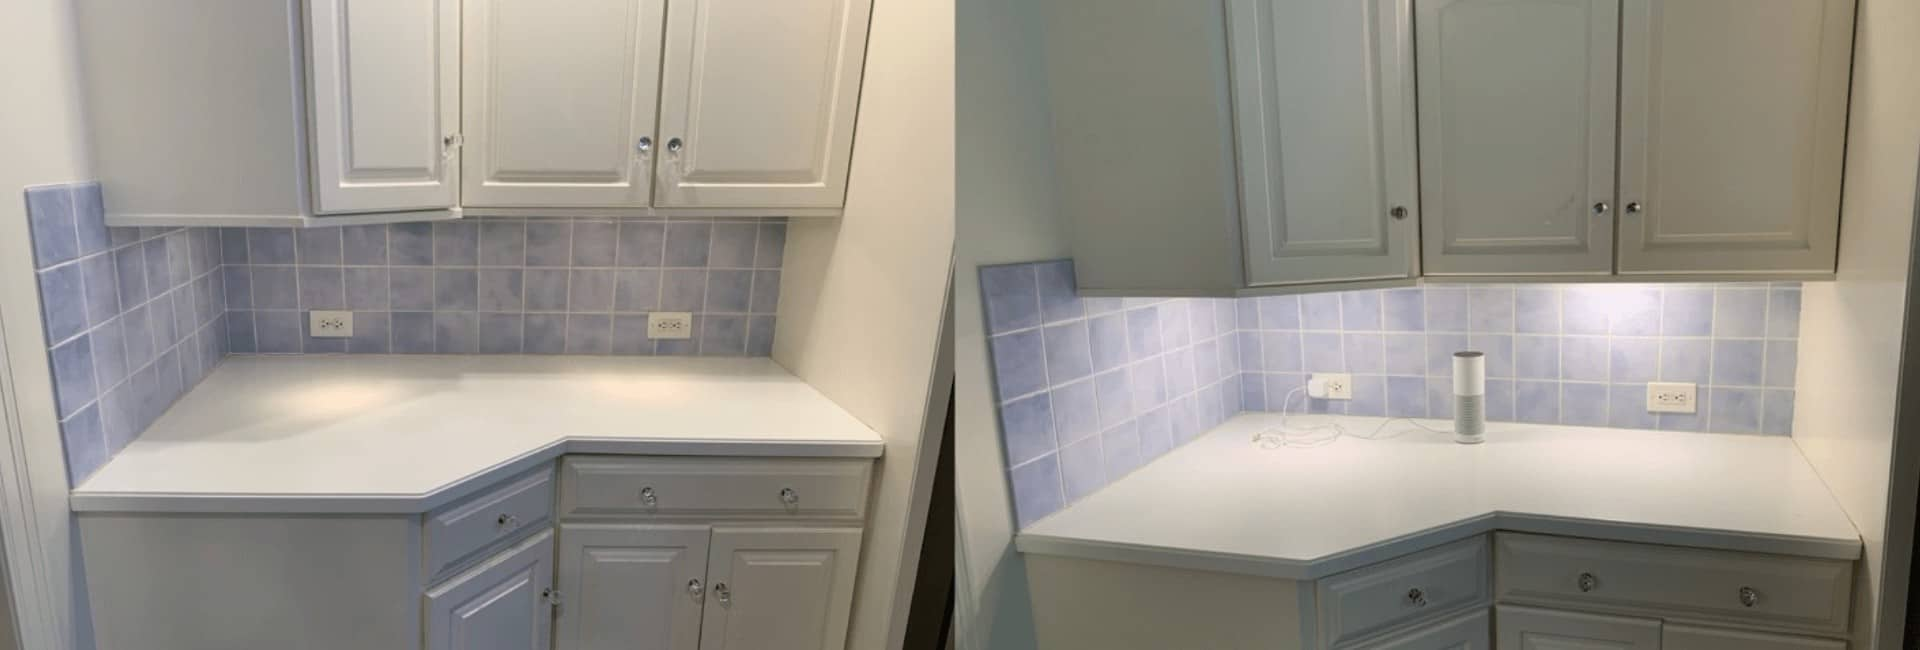 Kitchen Under Cabinet OLED Light Before And After Installation